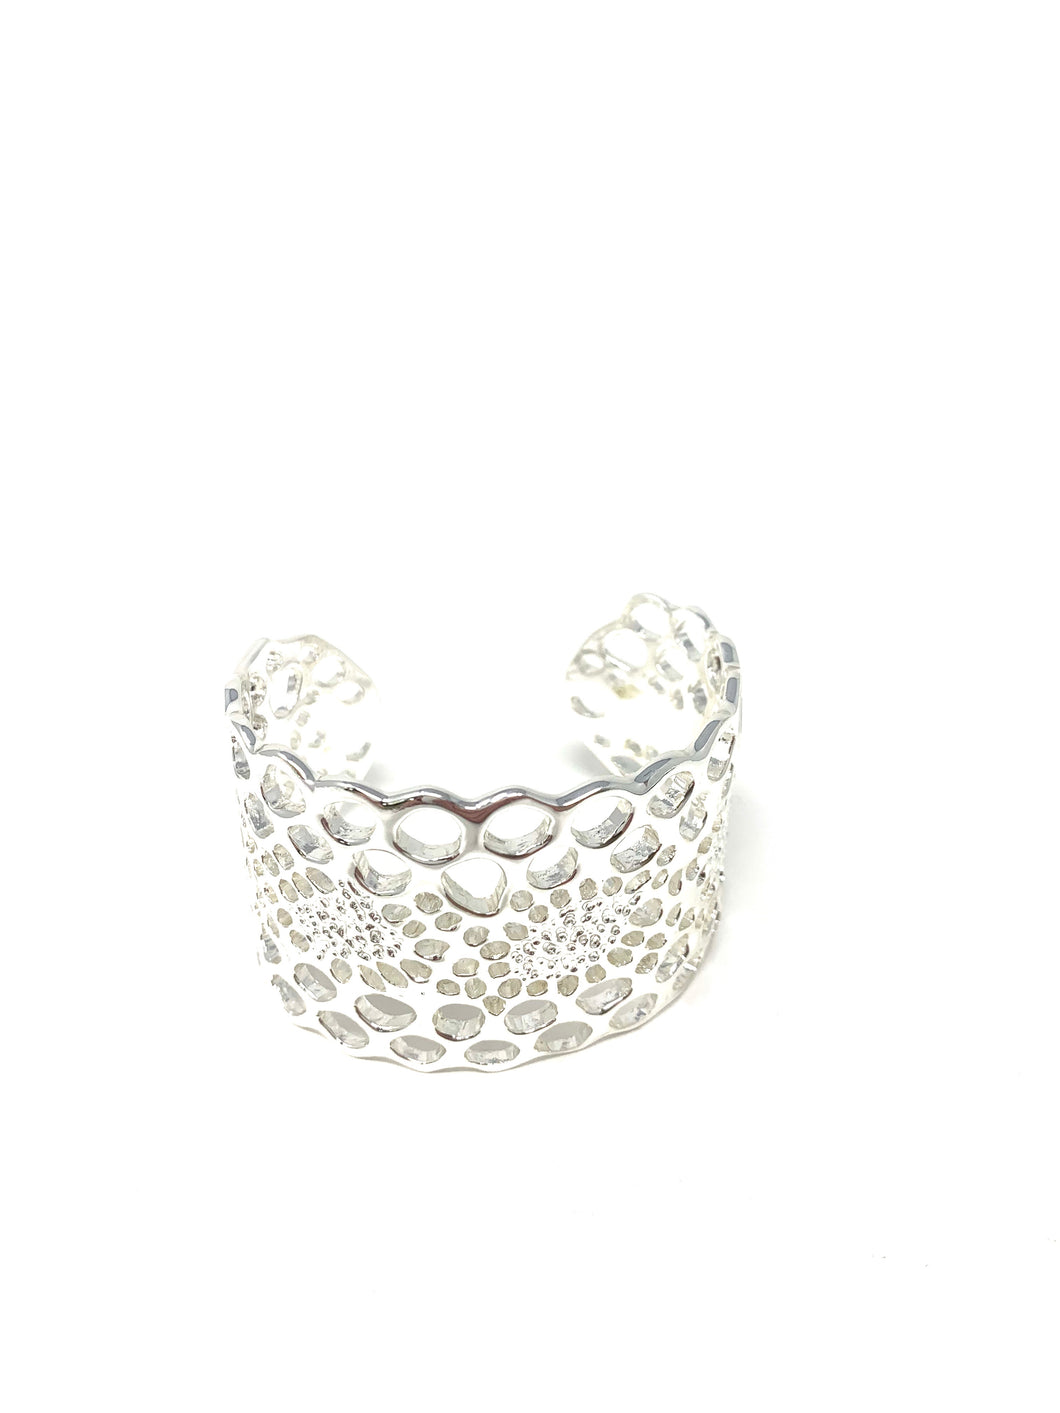 Honeycomb Cuff Silver tone Thick Bracelet